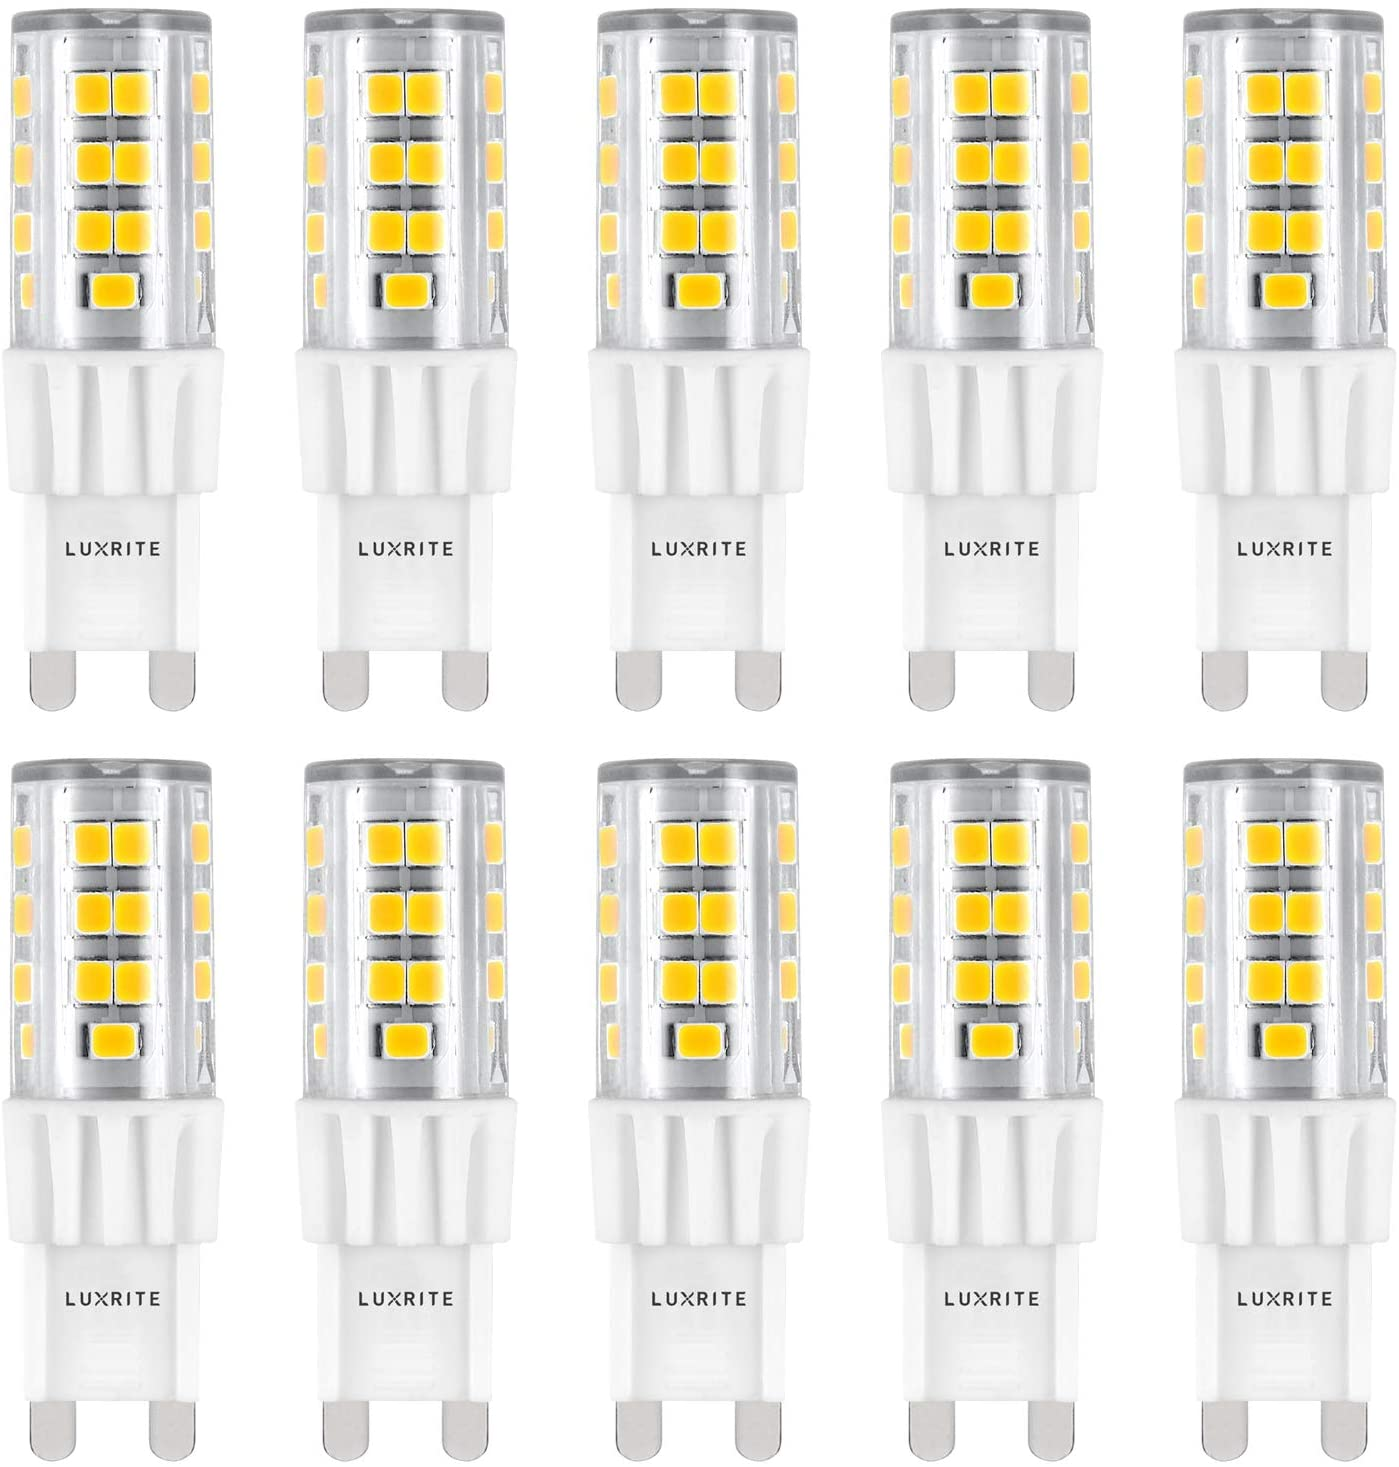 Luxrite G9 LED Bulb, 50W Equivalent, 550 Lumens, 4100K Cool White, Dimmable, 5W T4 Bulb, G9 Base - Chandelier Lighting, Sconce, Under Cabinet, Ceiling Fan, and Accent Lighting (10 Pack)